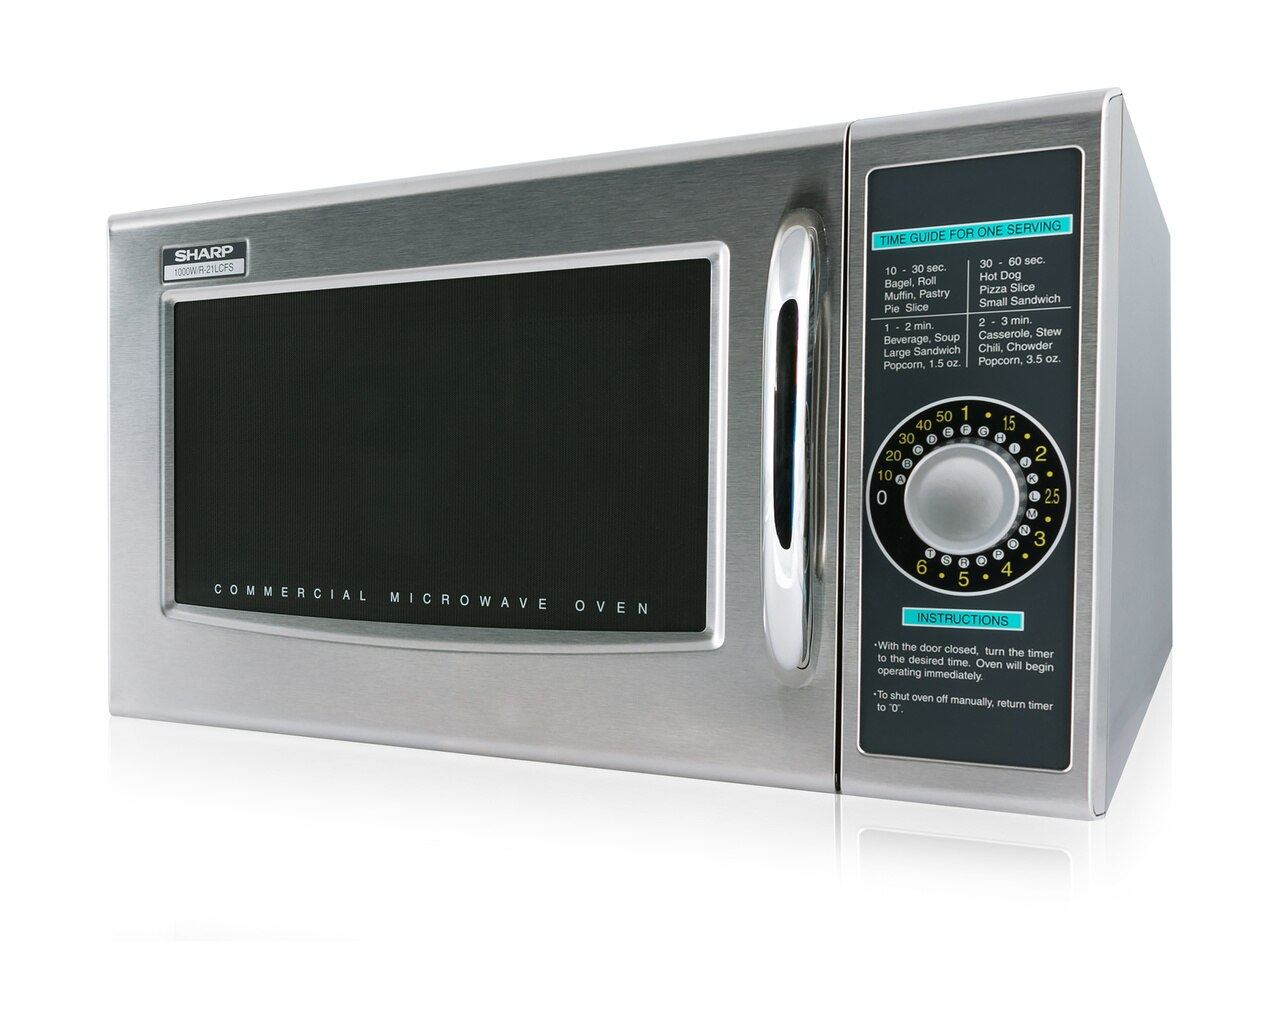 Medium-Duty Commercial Microwave Oven with 1000 Watts (R21LCFS) – left side view